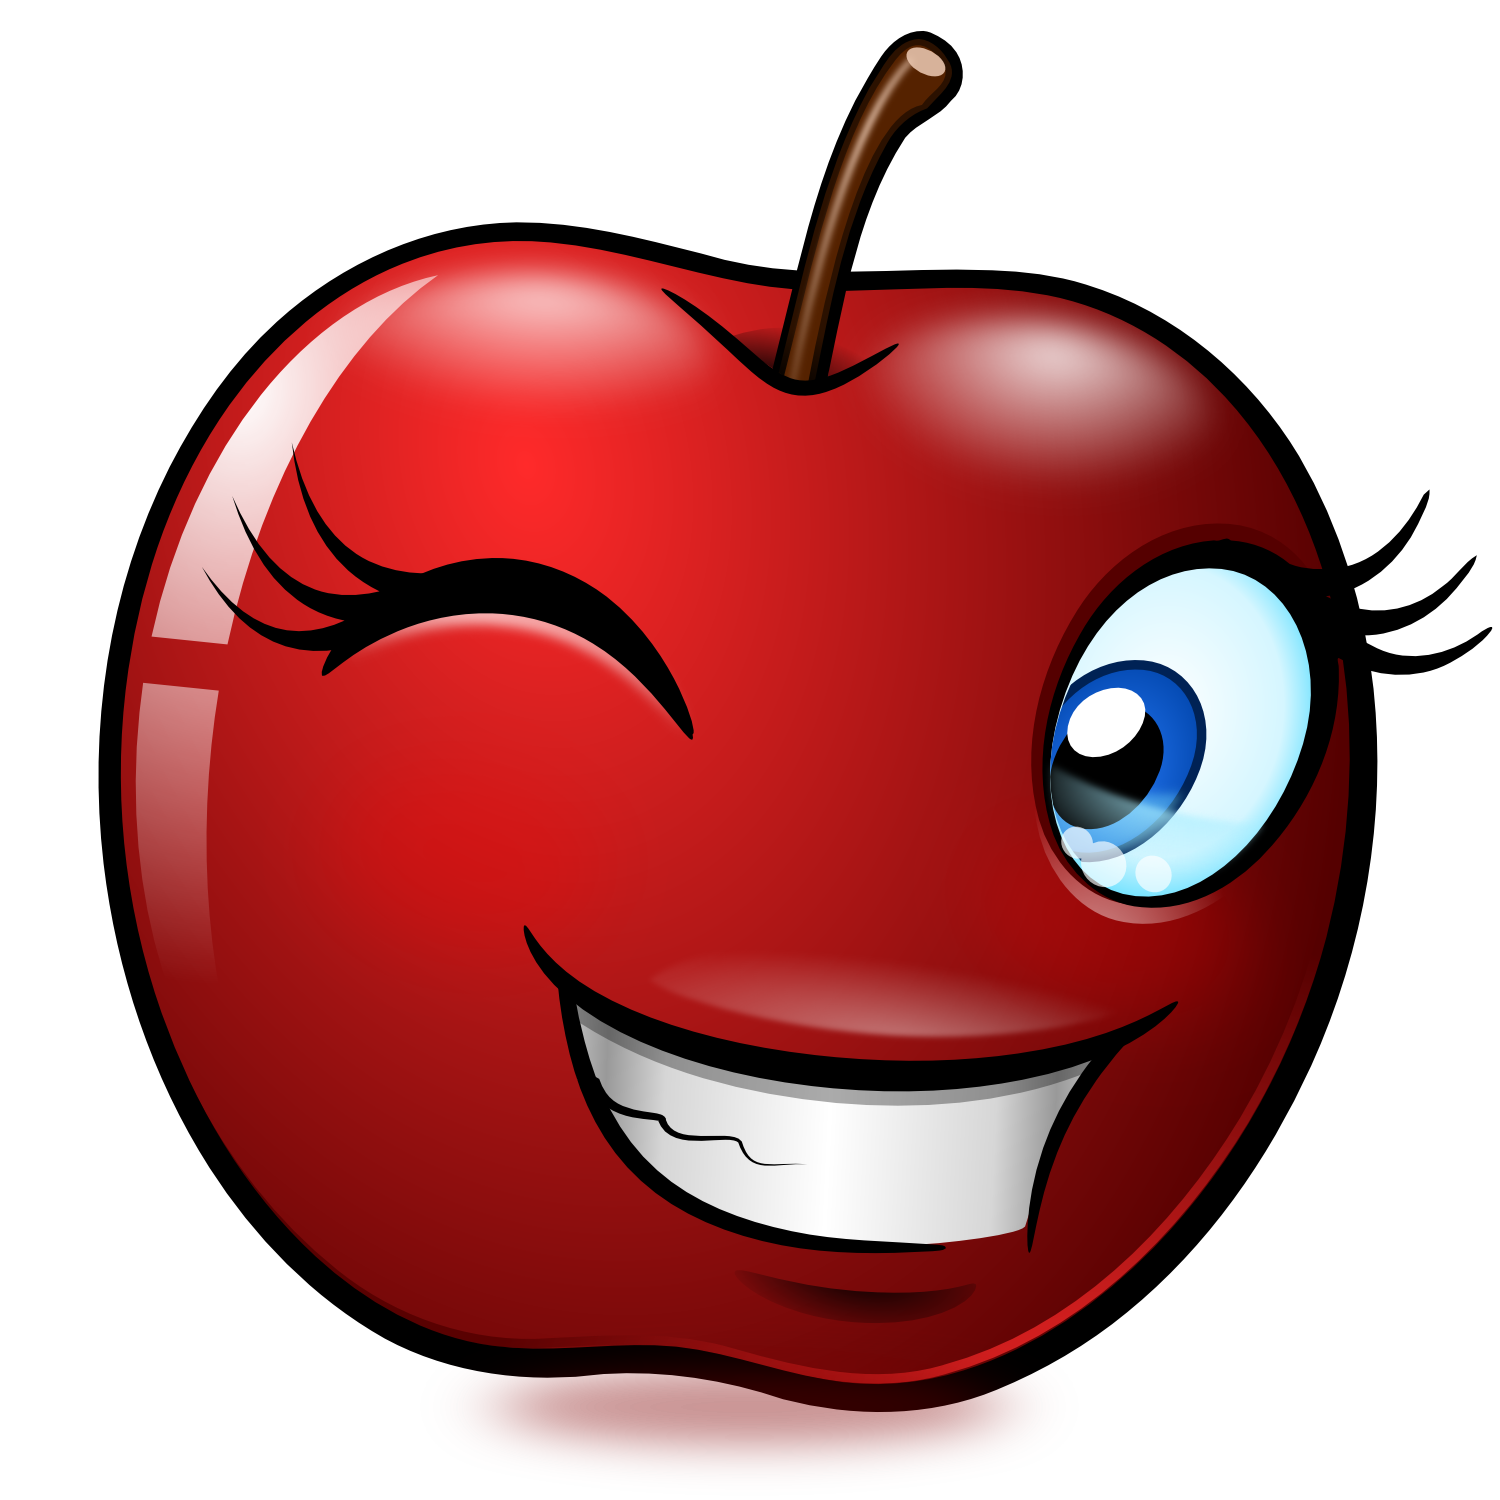 free smiling apple clipart - photo #12